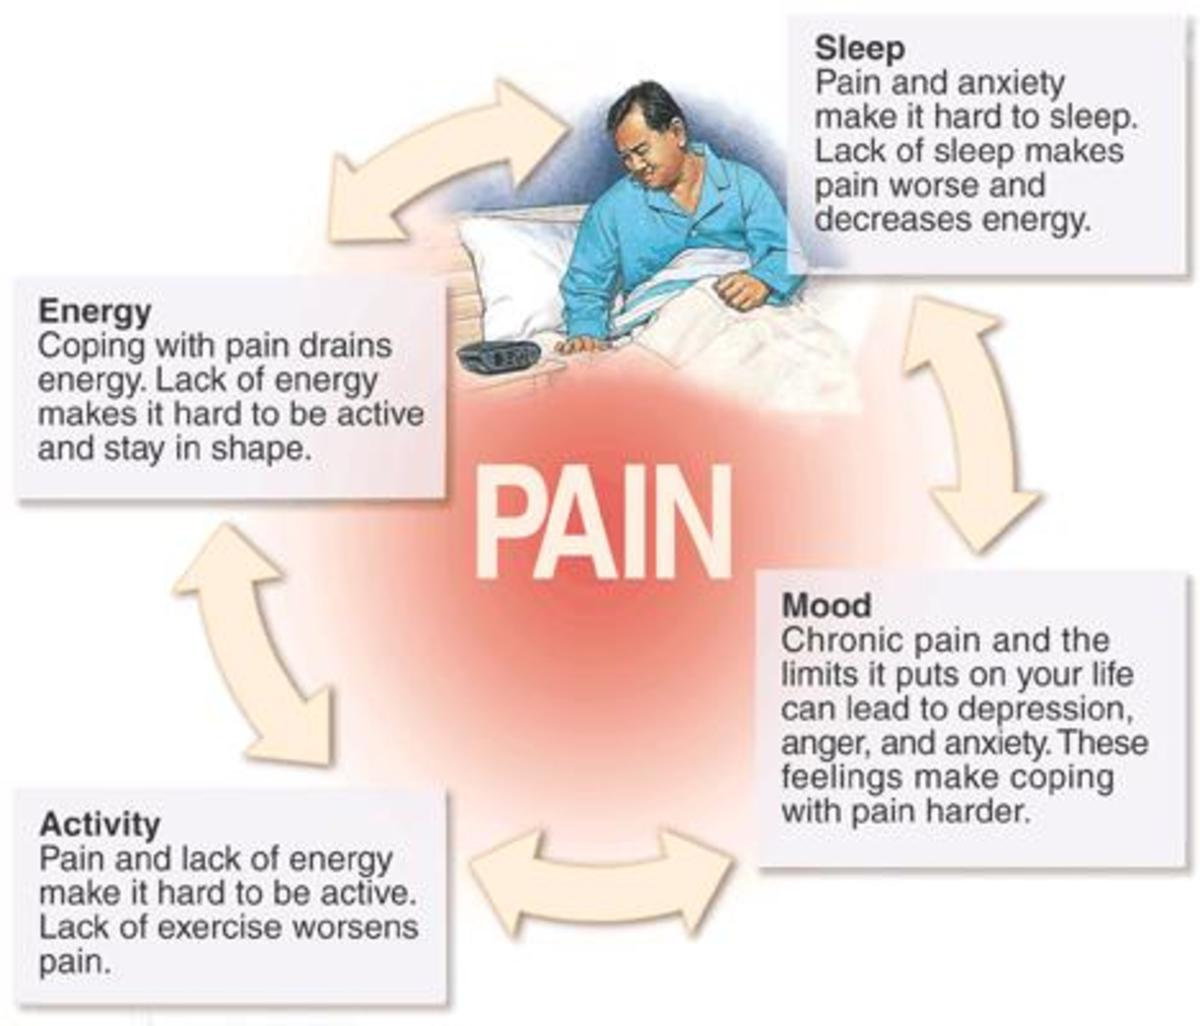 For many Fibromyalgia sufferers, it isn't uncommon for them to feel hopeless. They have most likely tried everything to get relief and hardly any advice from others will be news to a sufferer. It's a vicious cycle of discomfort.